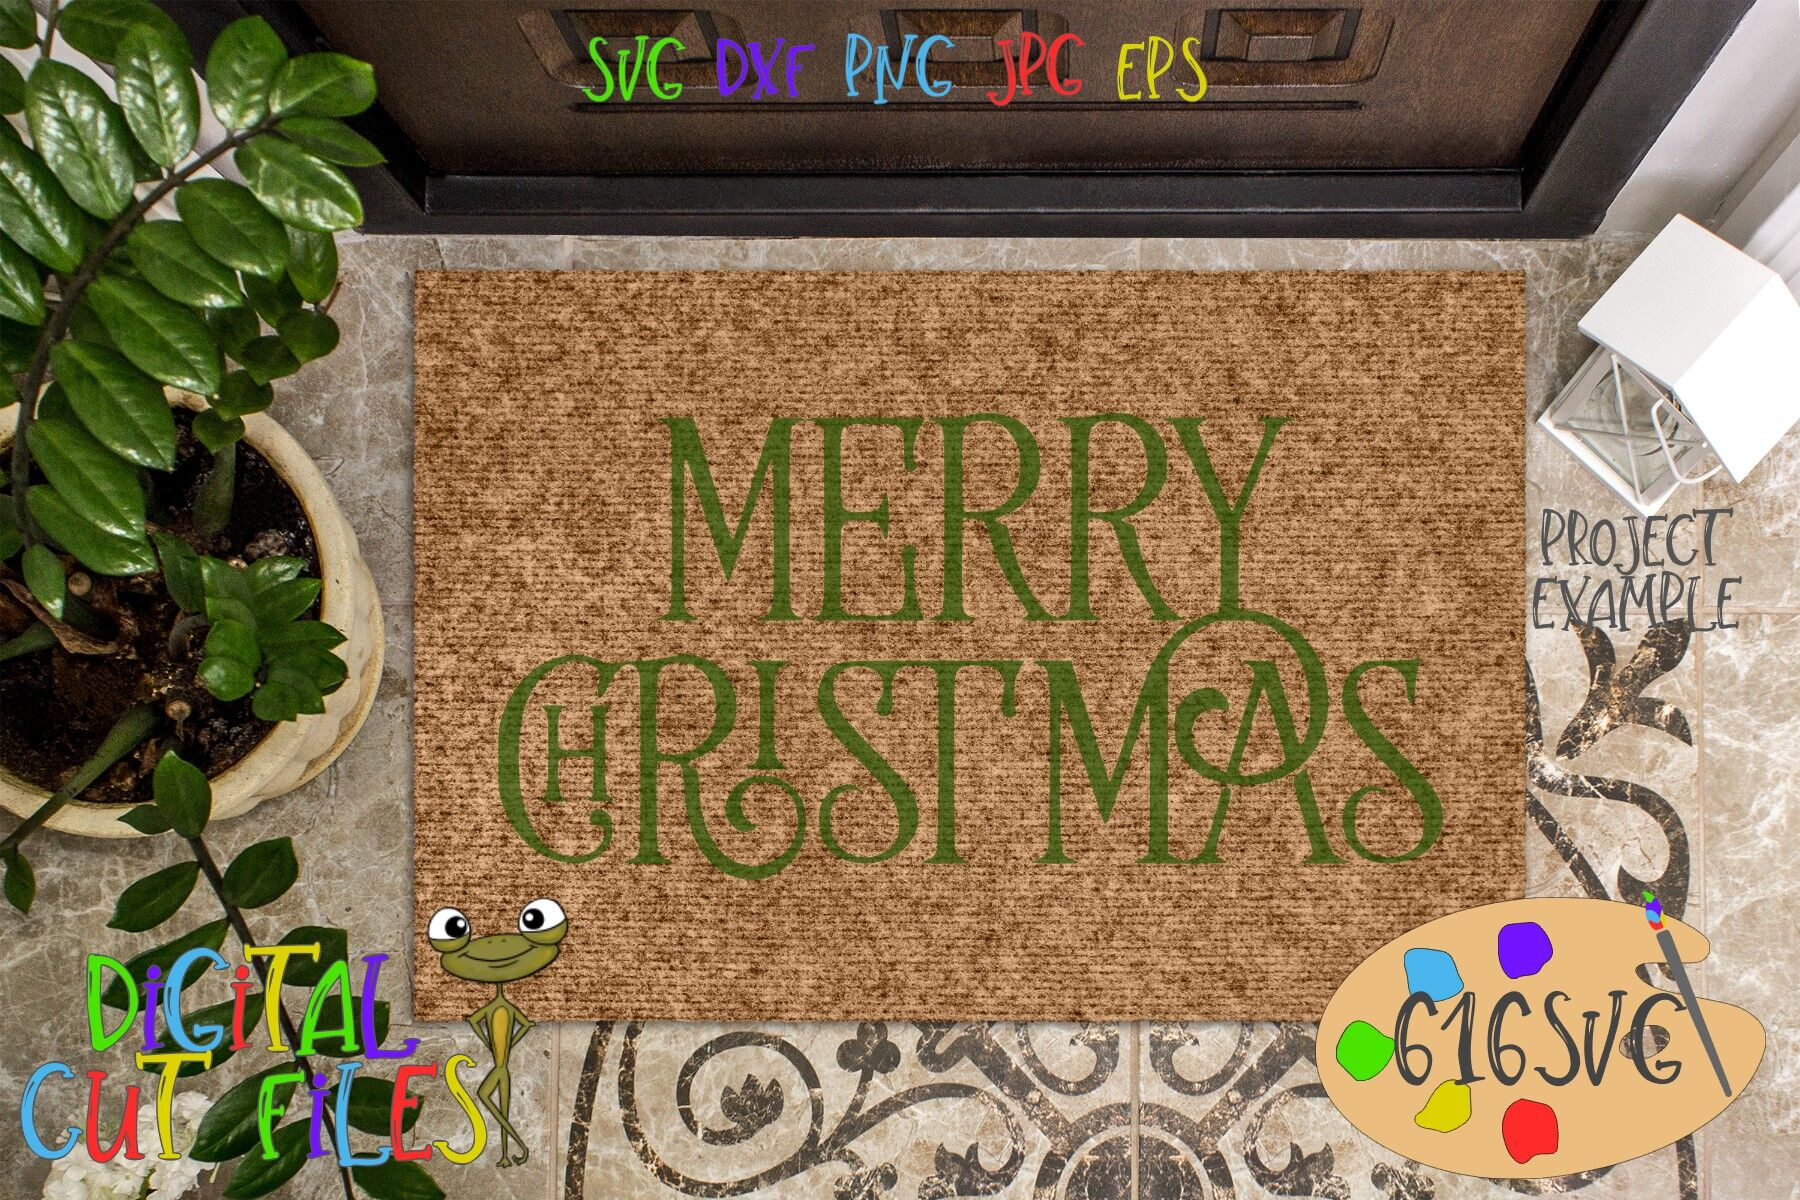 Merry Christmas Svg Dxf By 616svg Thehungryjpeg Com